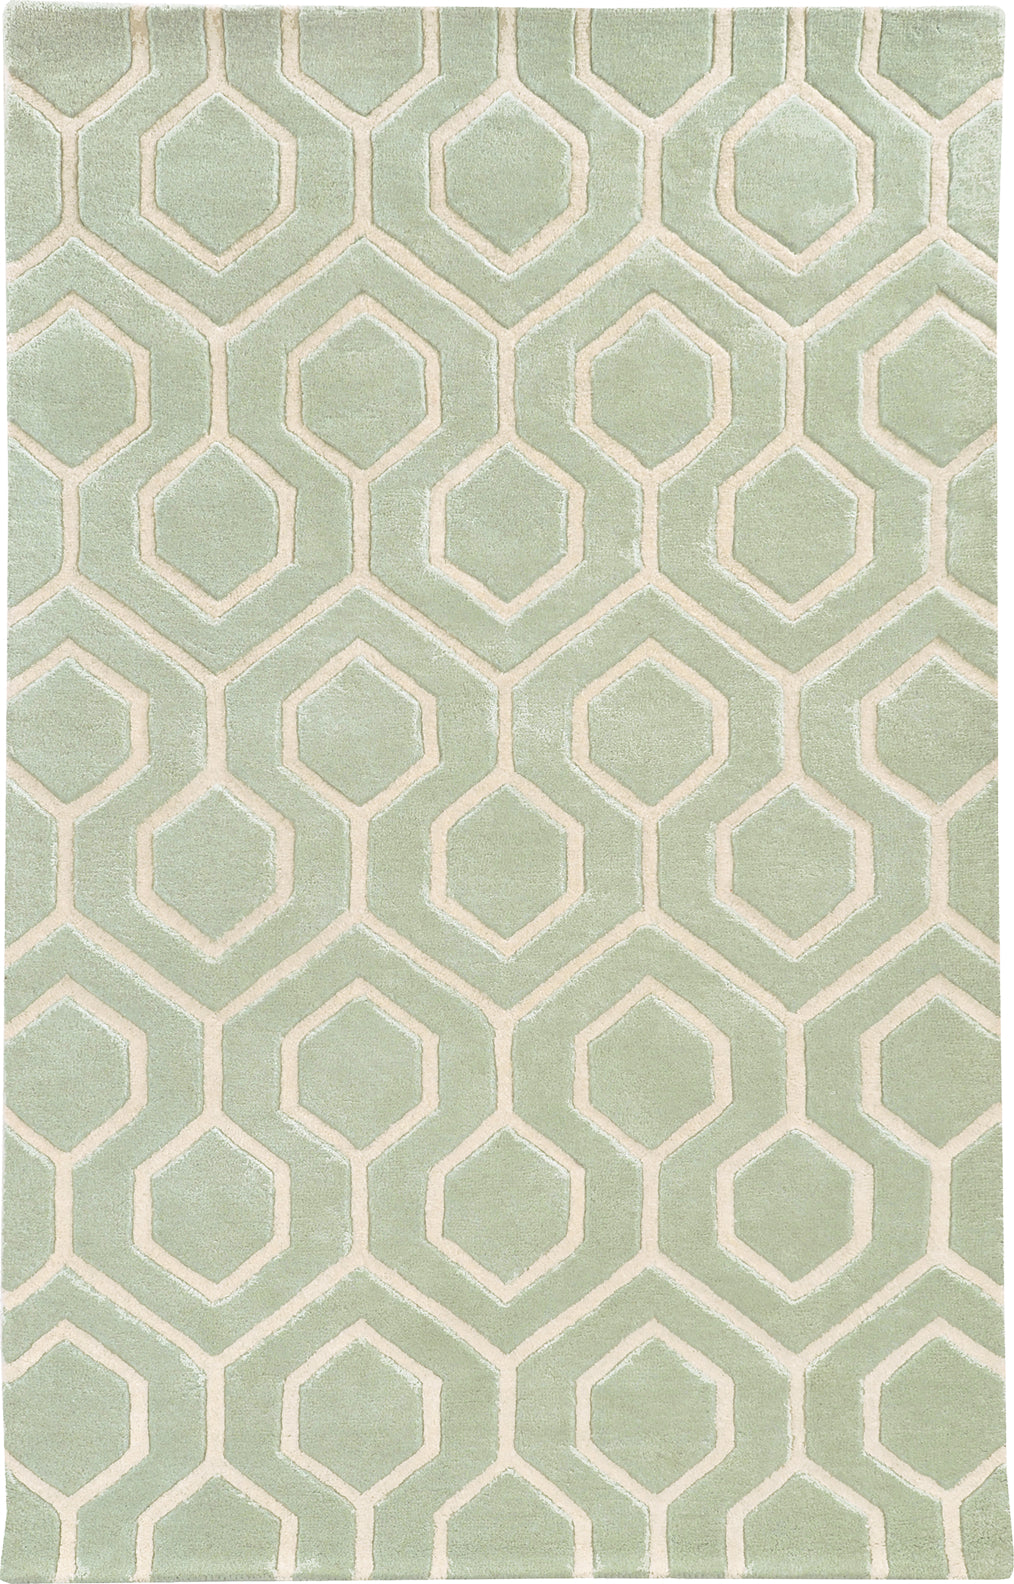 Pantone Universe Optic 41106 Green/Ivory Area Rug main image